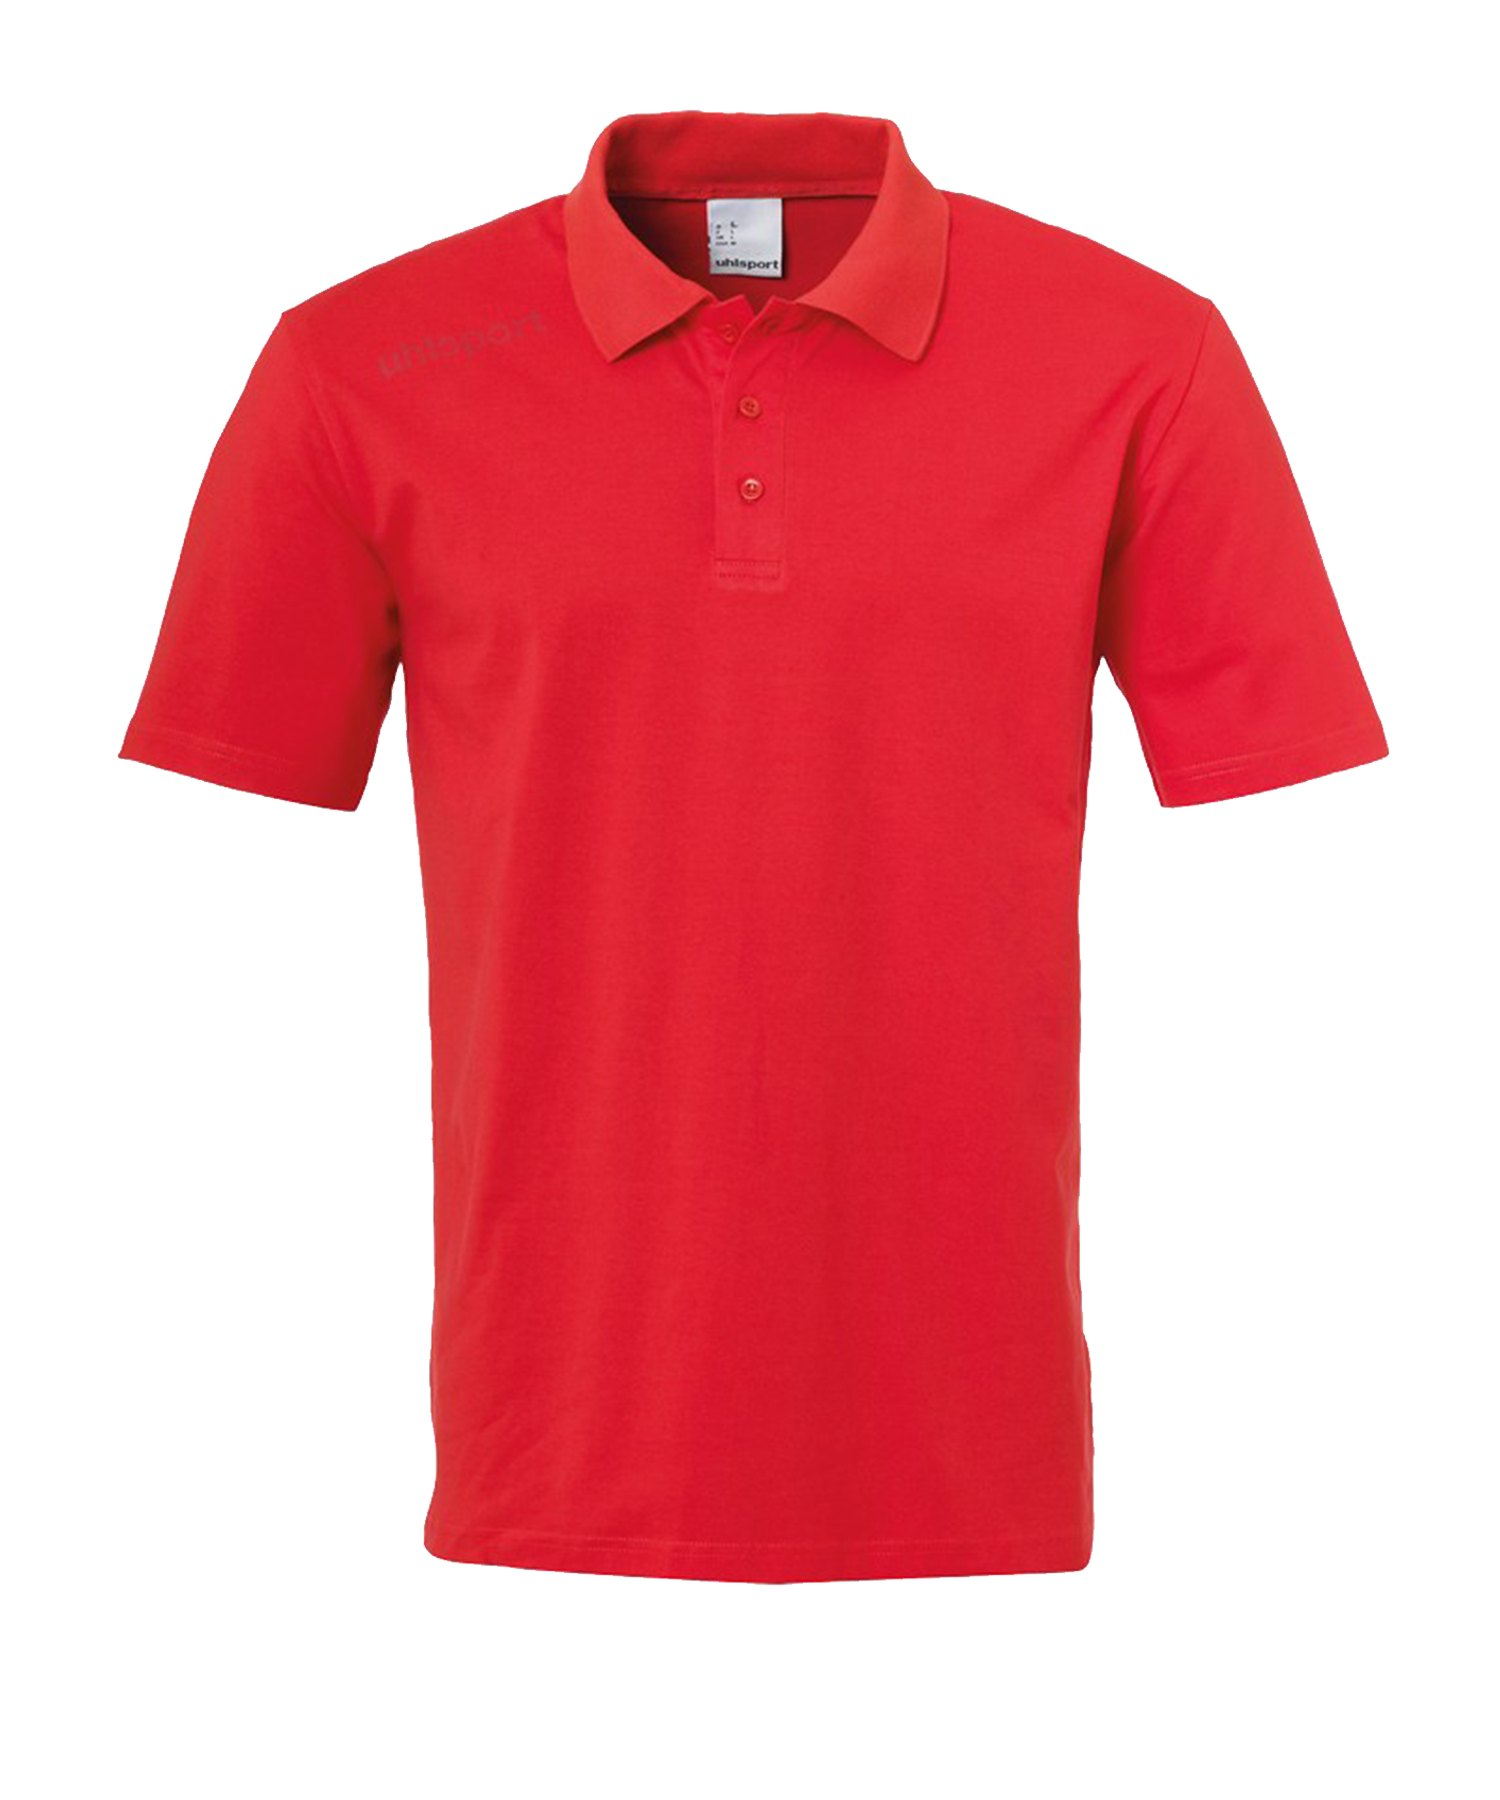 Uhlsport Essential Poloshirt Kids Rot F04 - Rot